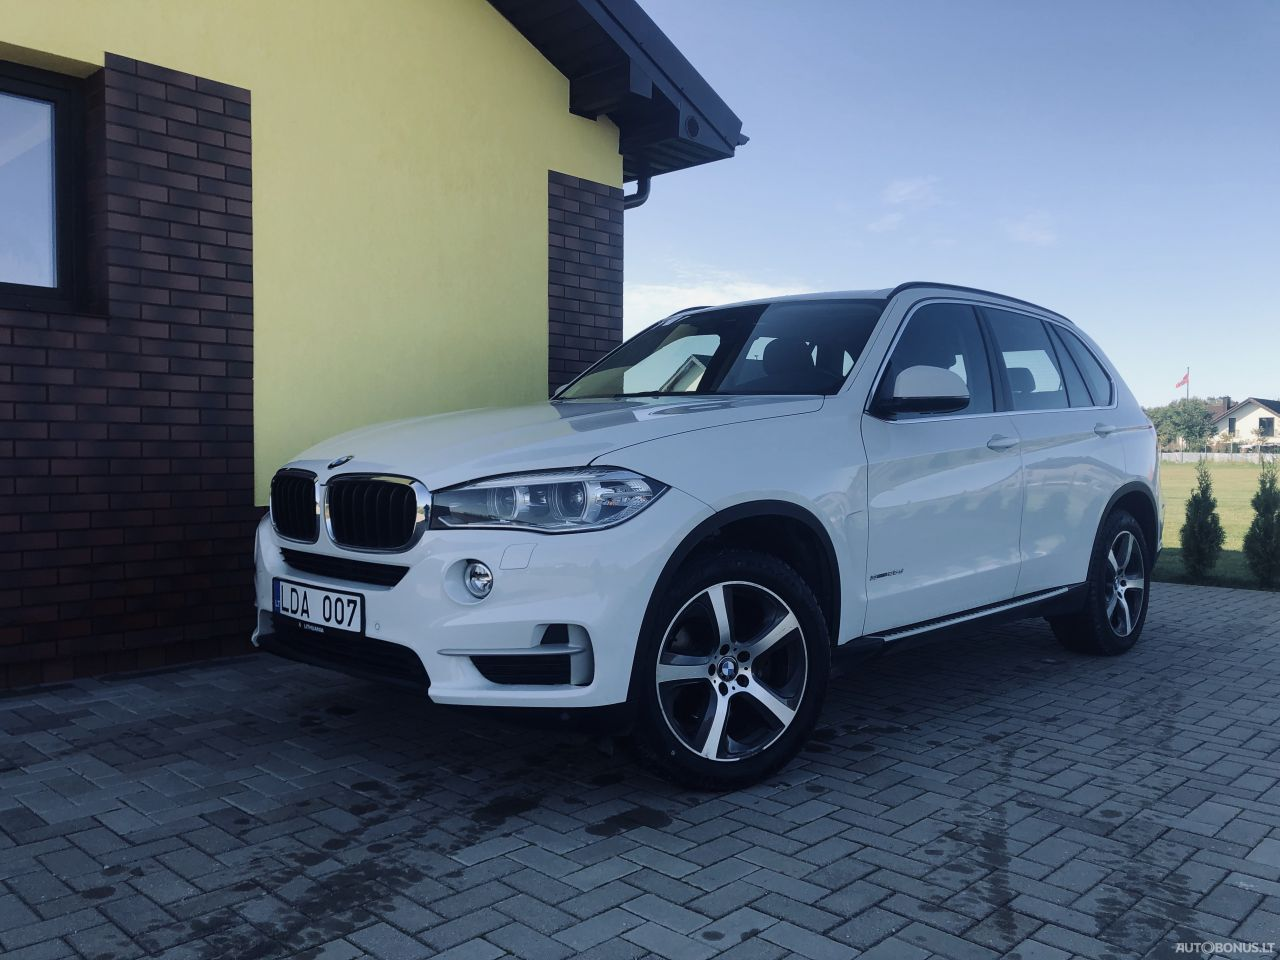 BMW X5, Cross-country